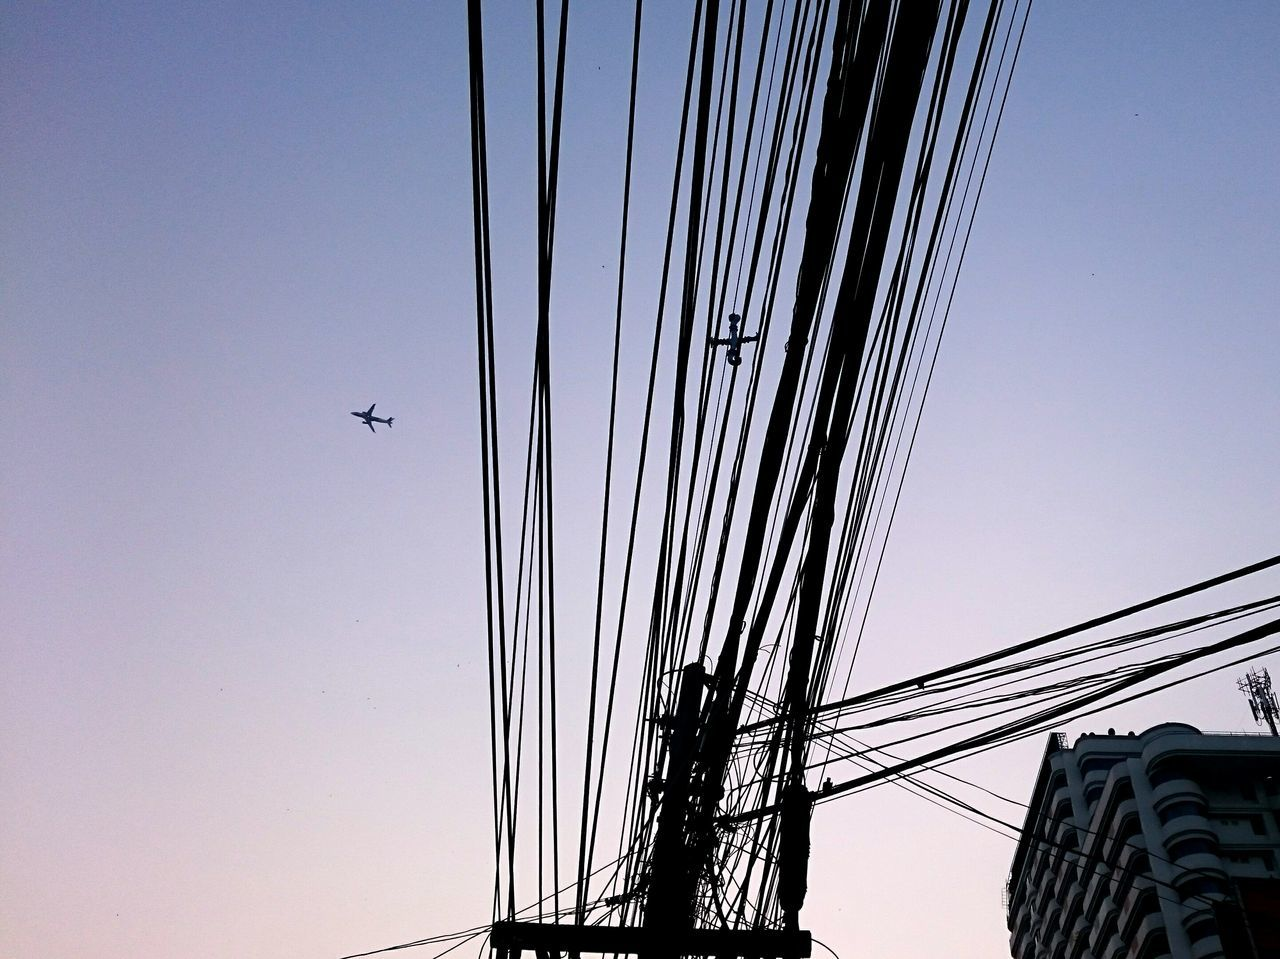 Sky Outdoors Clear Sky Connection No People City Motion Day Amusement Park Airplane Avion